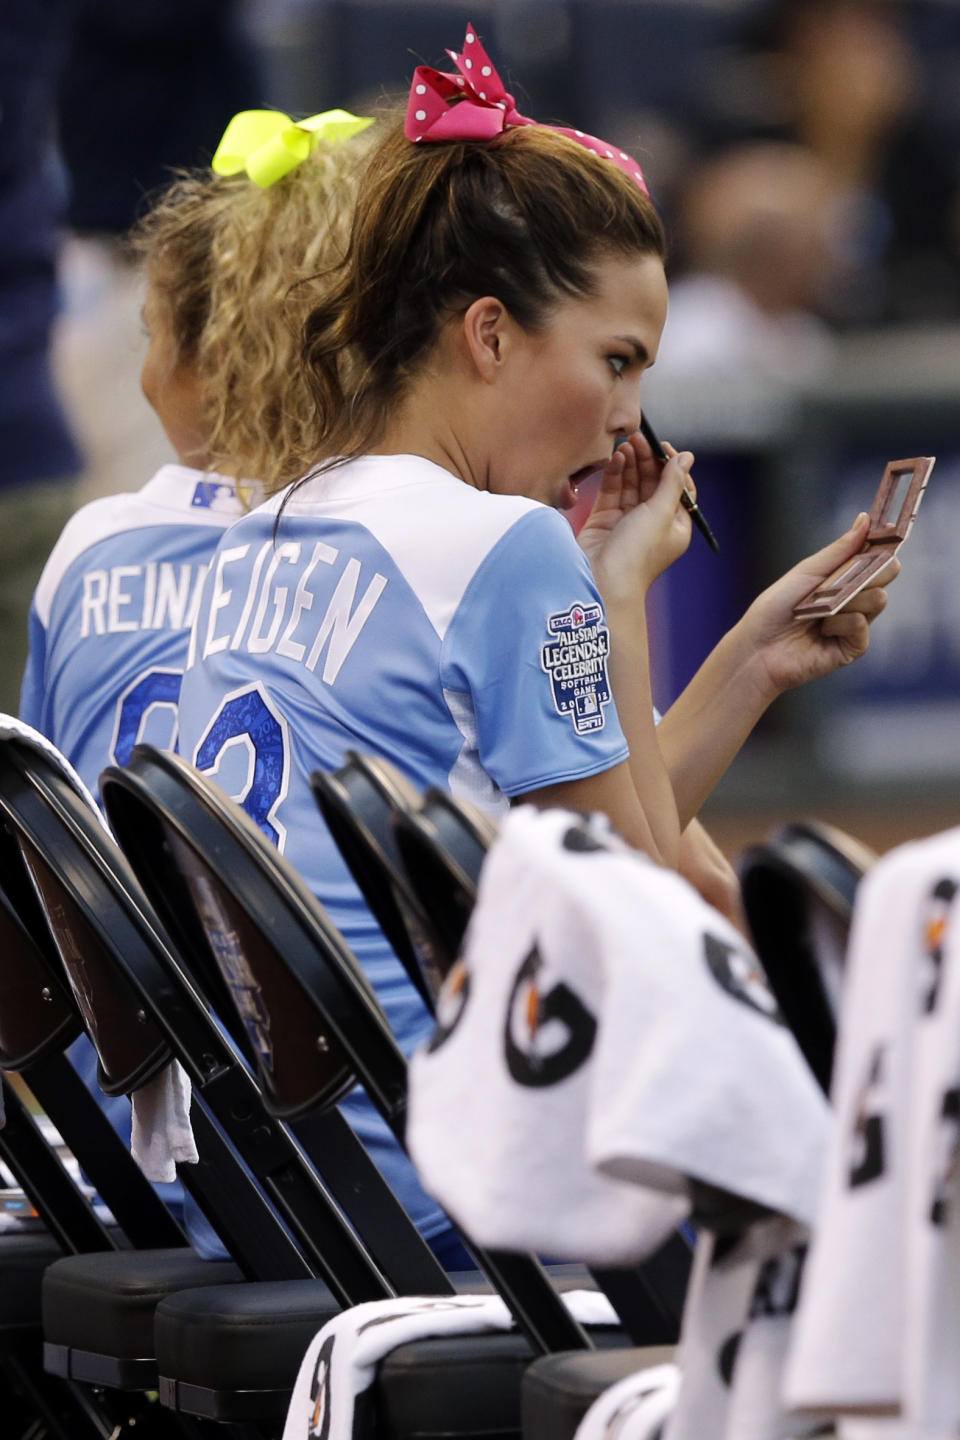 Model Christine Tiegen fixes her makeup during the first inning of the MLB All-Star celebrity softball game, Sunday, July 8, 2012, in Kansas City, Mo. (AP Photo/Charlie Riedel)